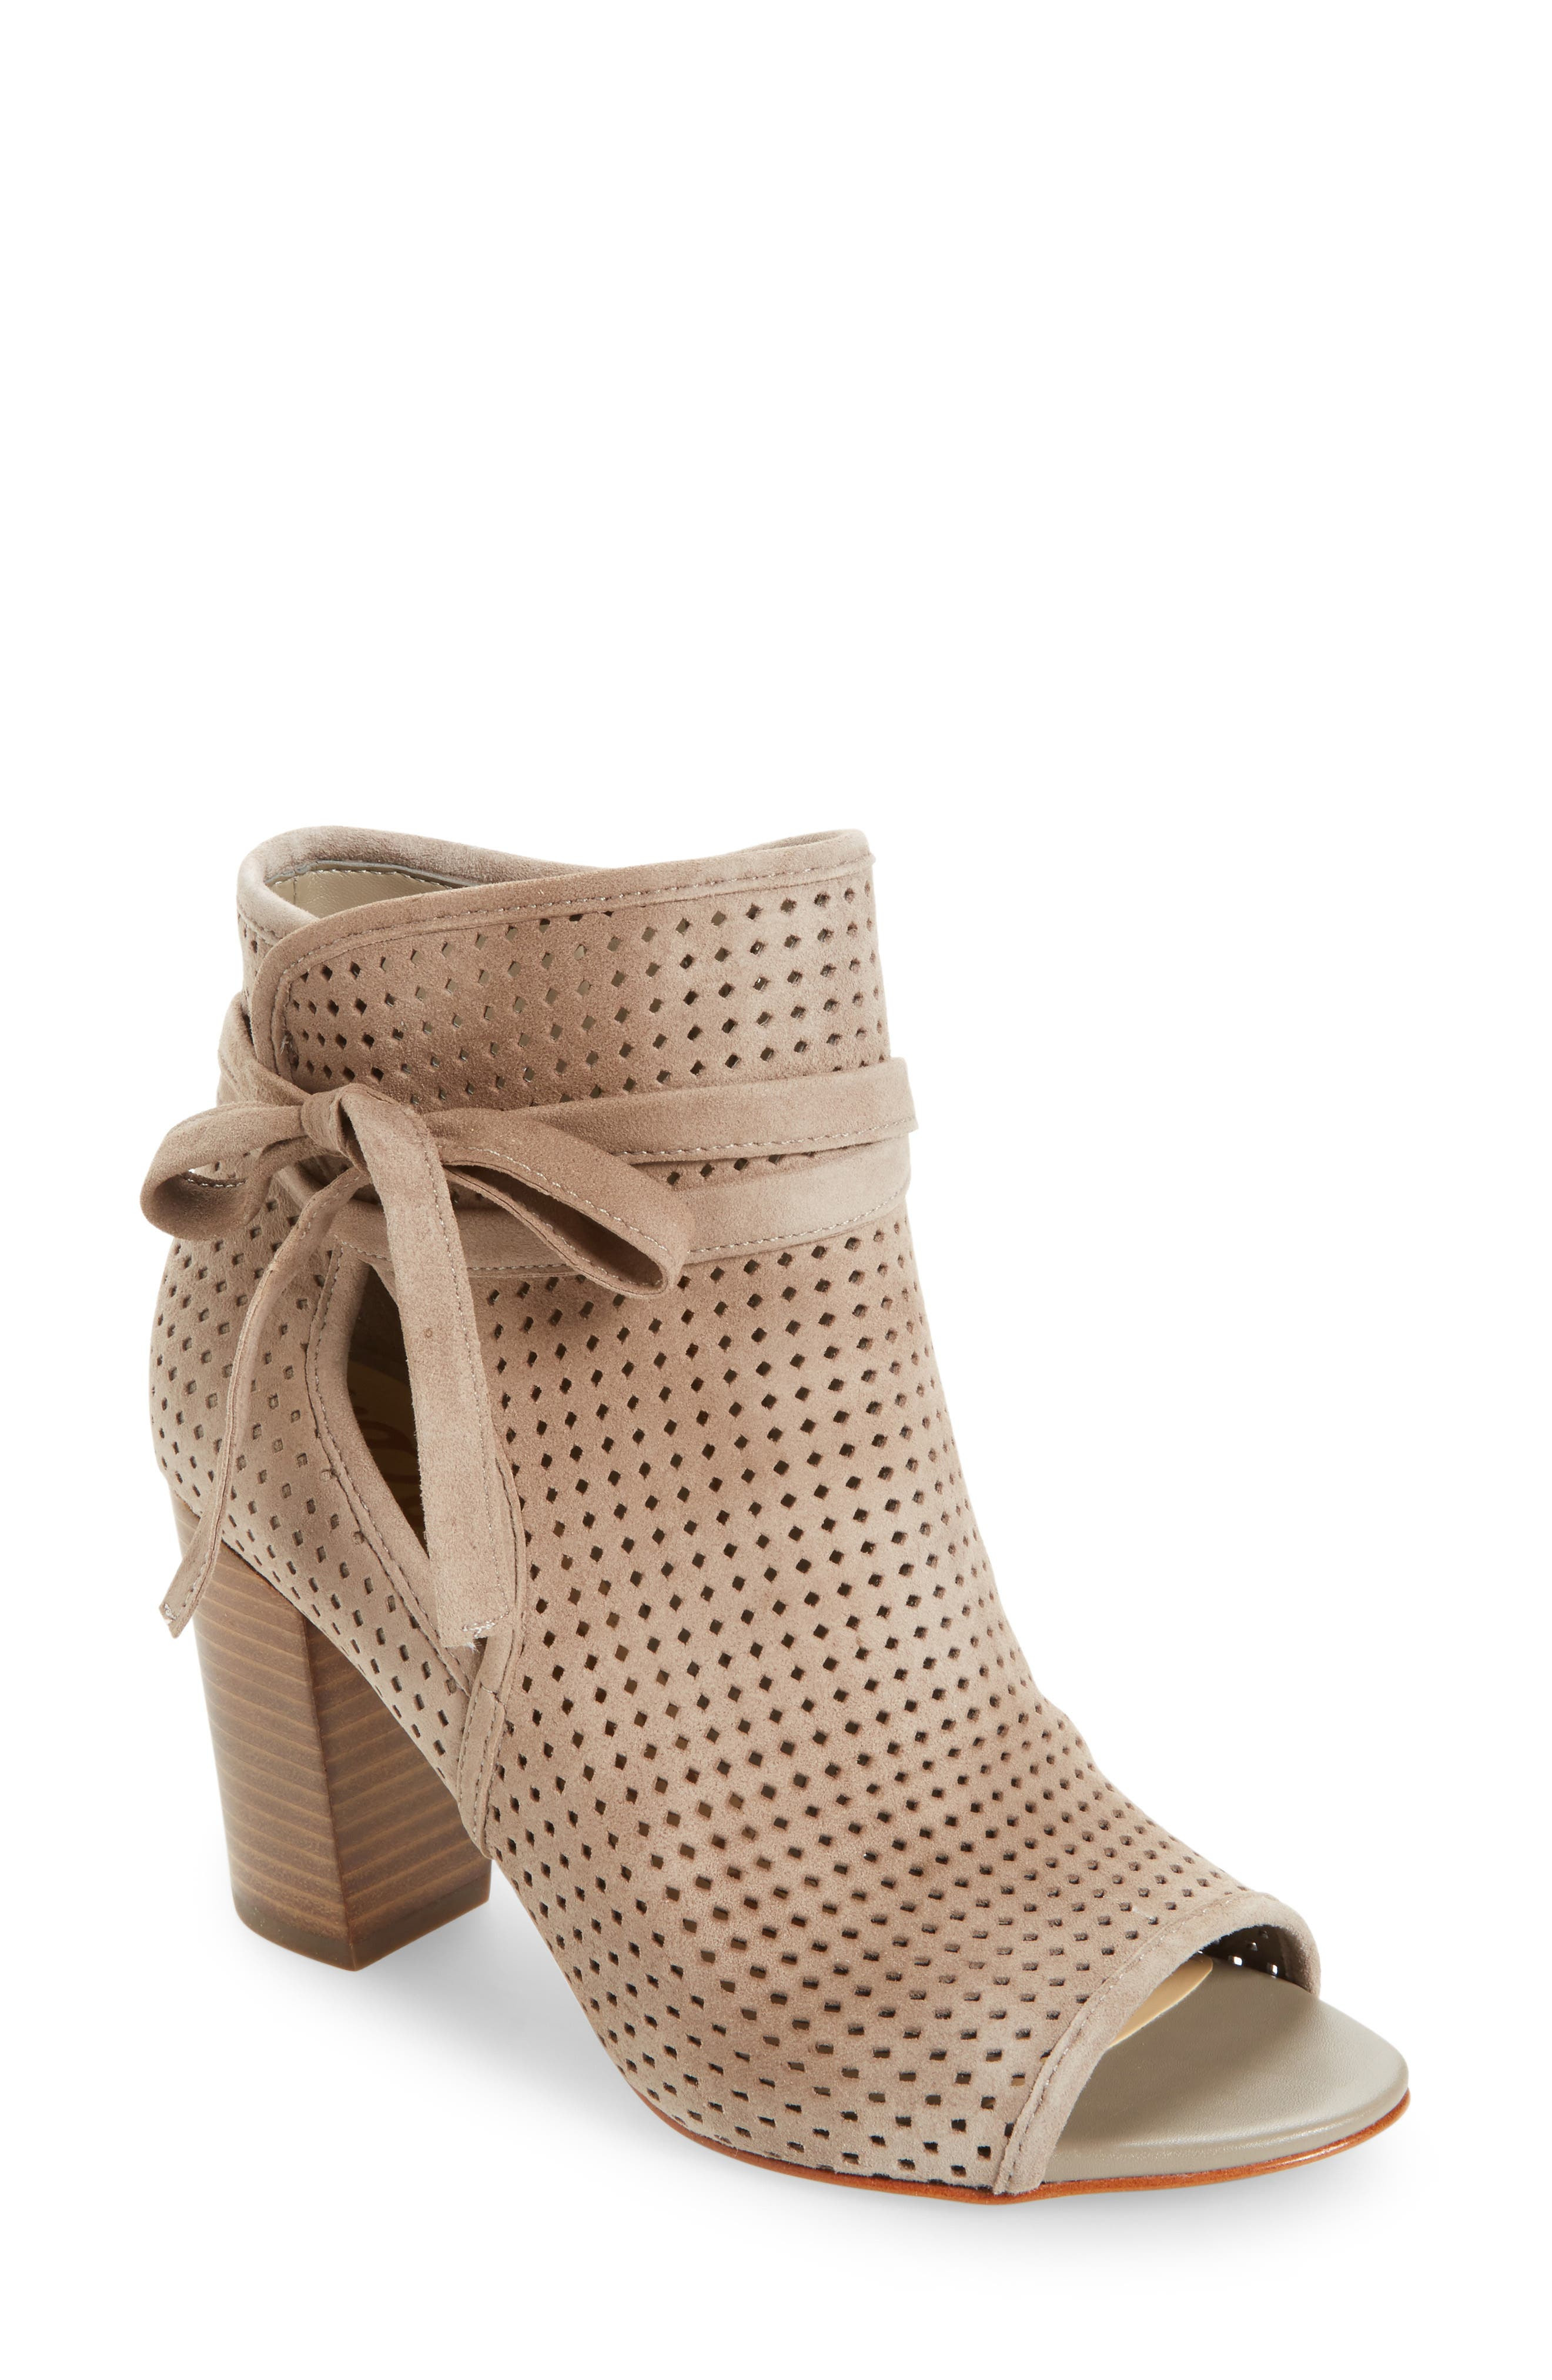 Alternate Image 1 Selected - Sam Edelman Ellery Open Toe Bootie (Women)